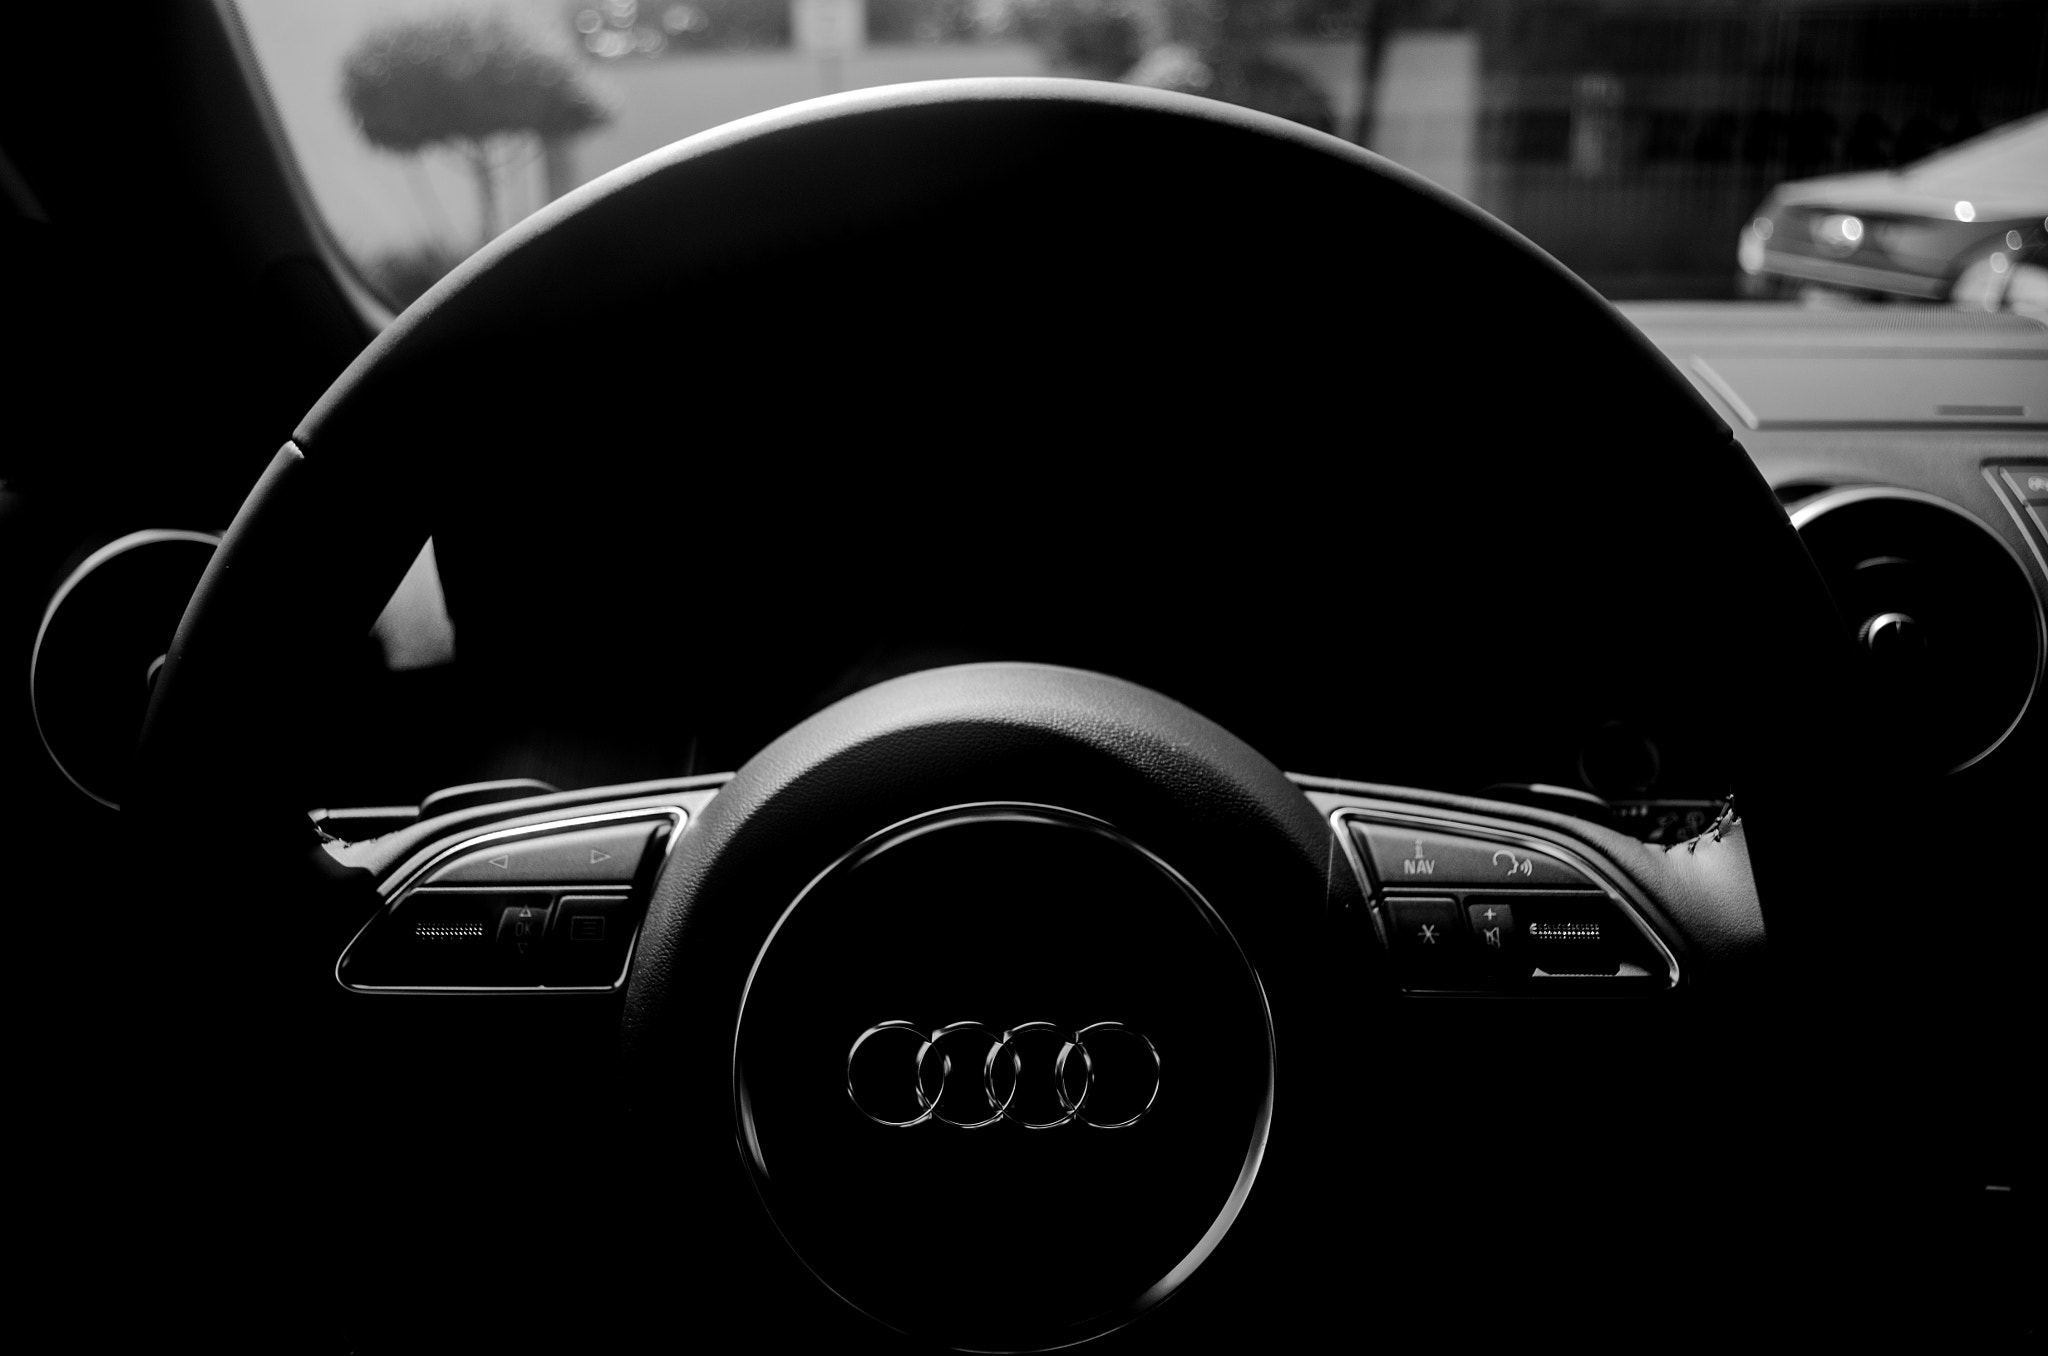 Photograph Audi A1 by manolo sañudo on 500px